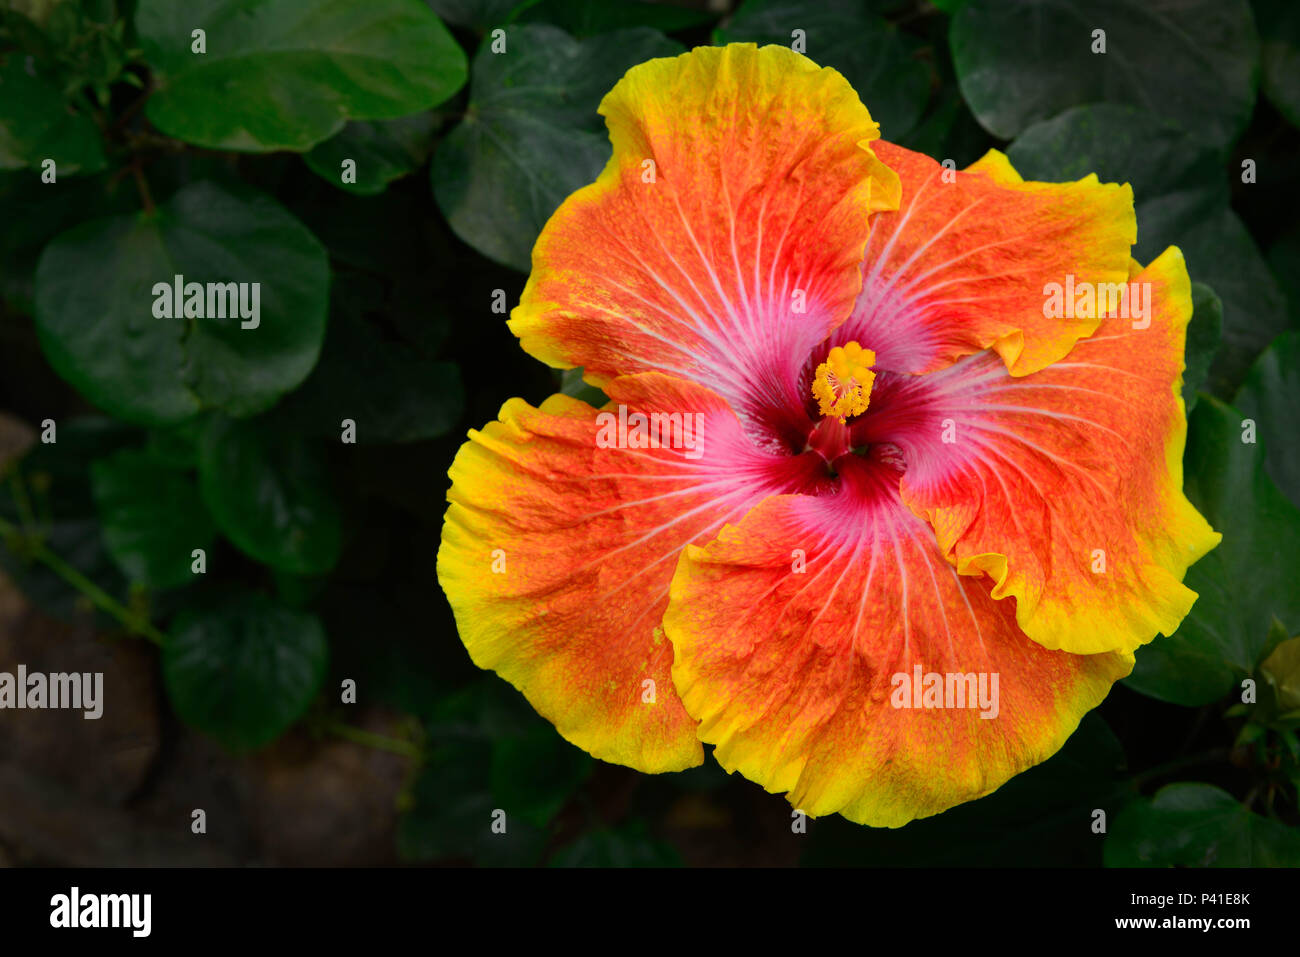 An Off Centereed Big And Vibrant Yellow And Orange Hibiscus Flower